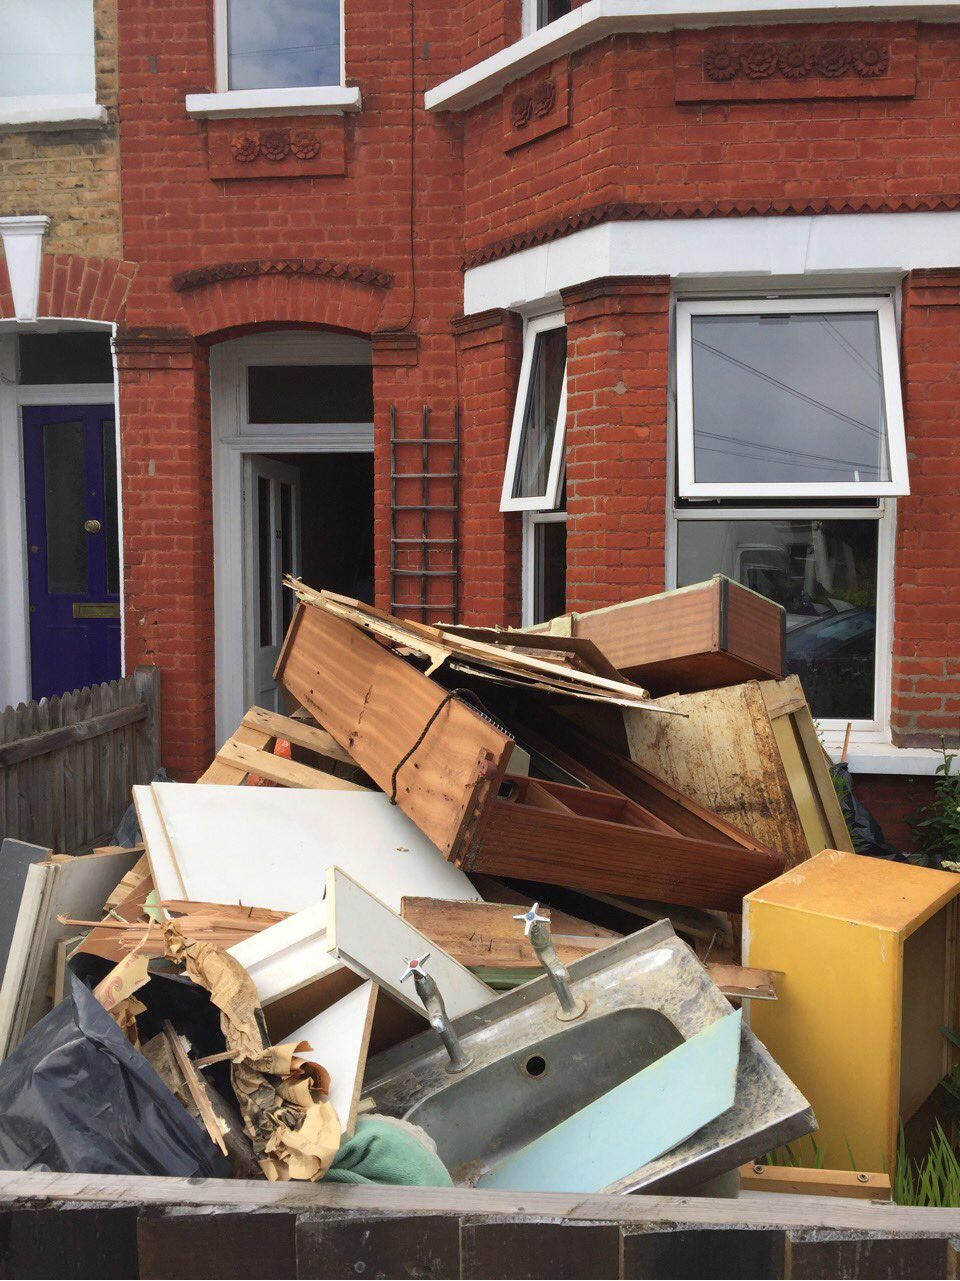 SW17 house clearance Tooting Bec